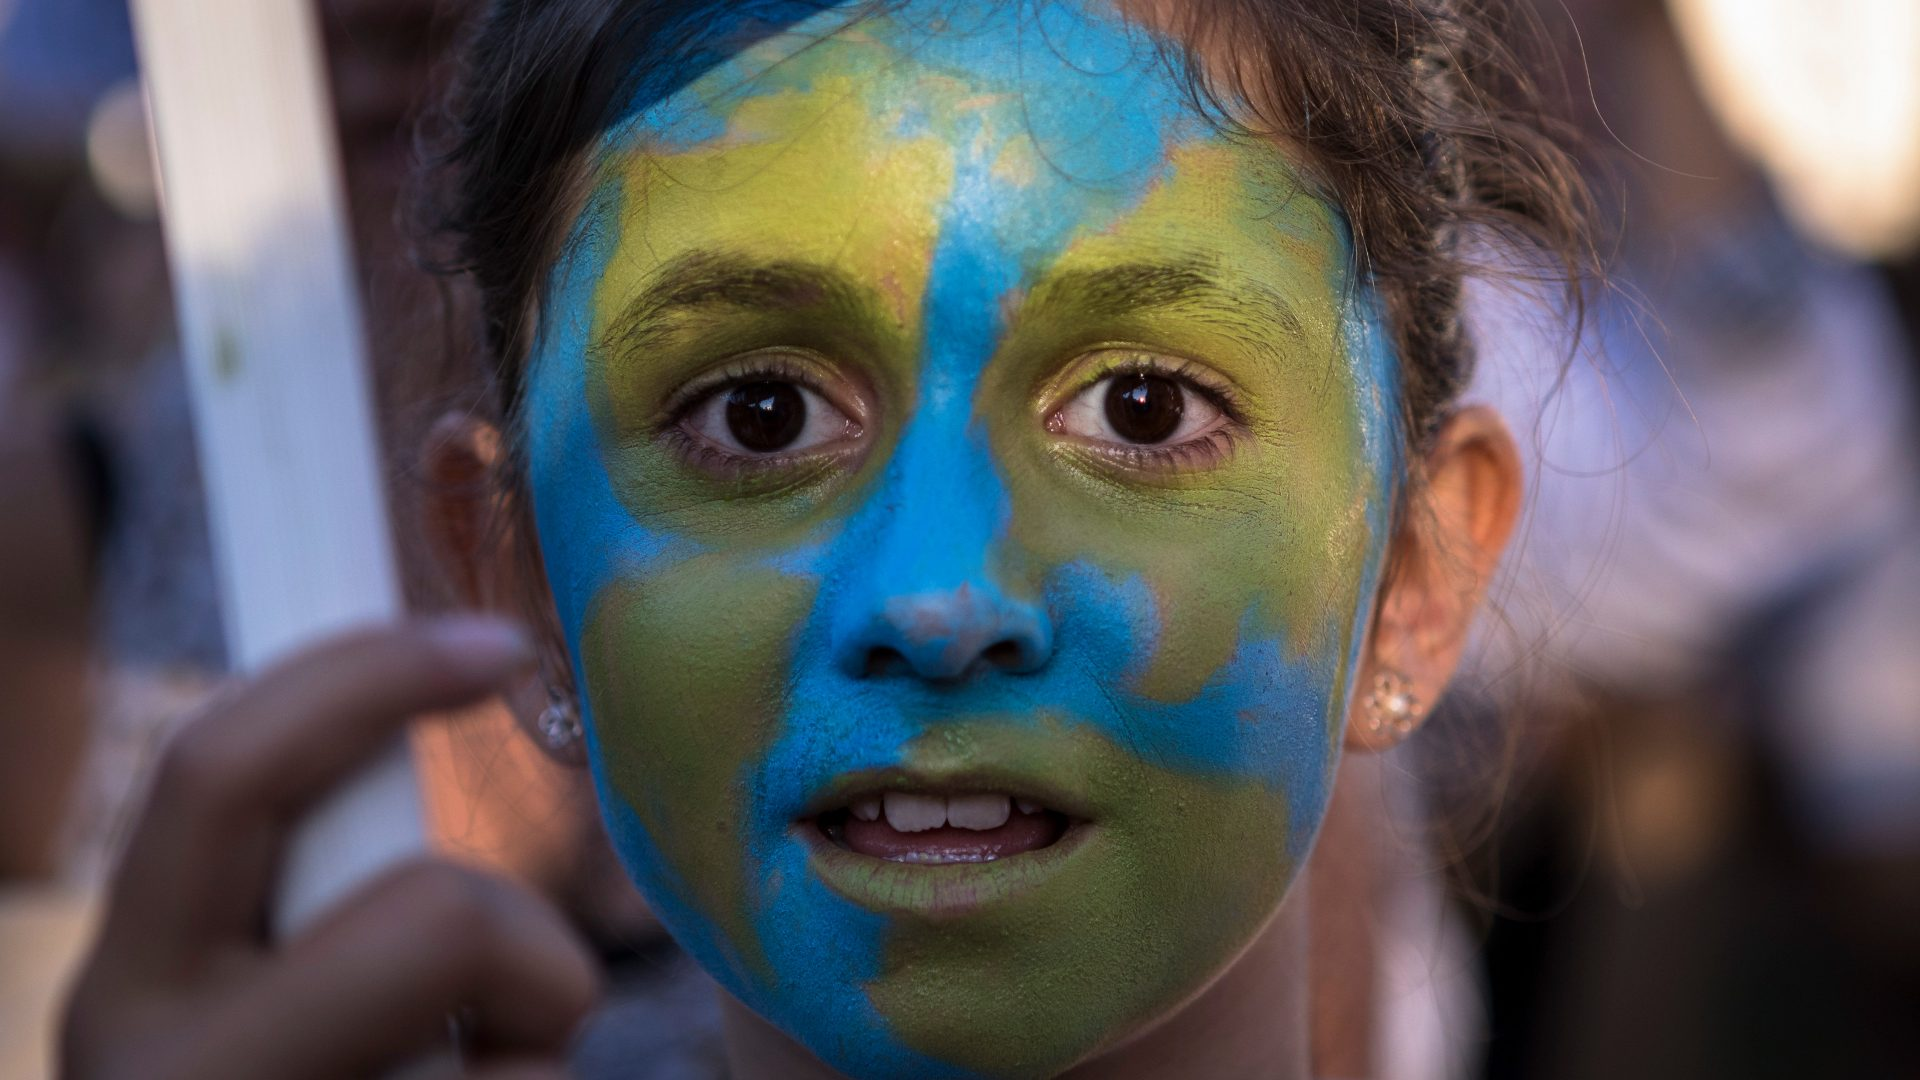 A young girl with face paintings during the Climate Strike in Madrid that was part of the global climate strikes all around the world.